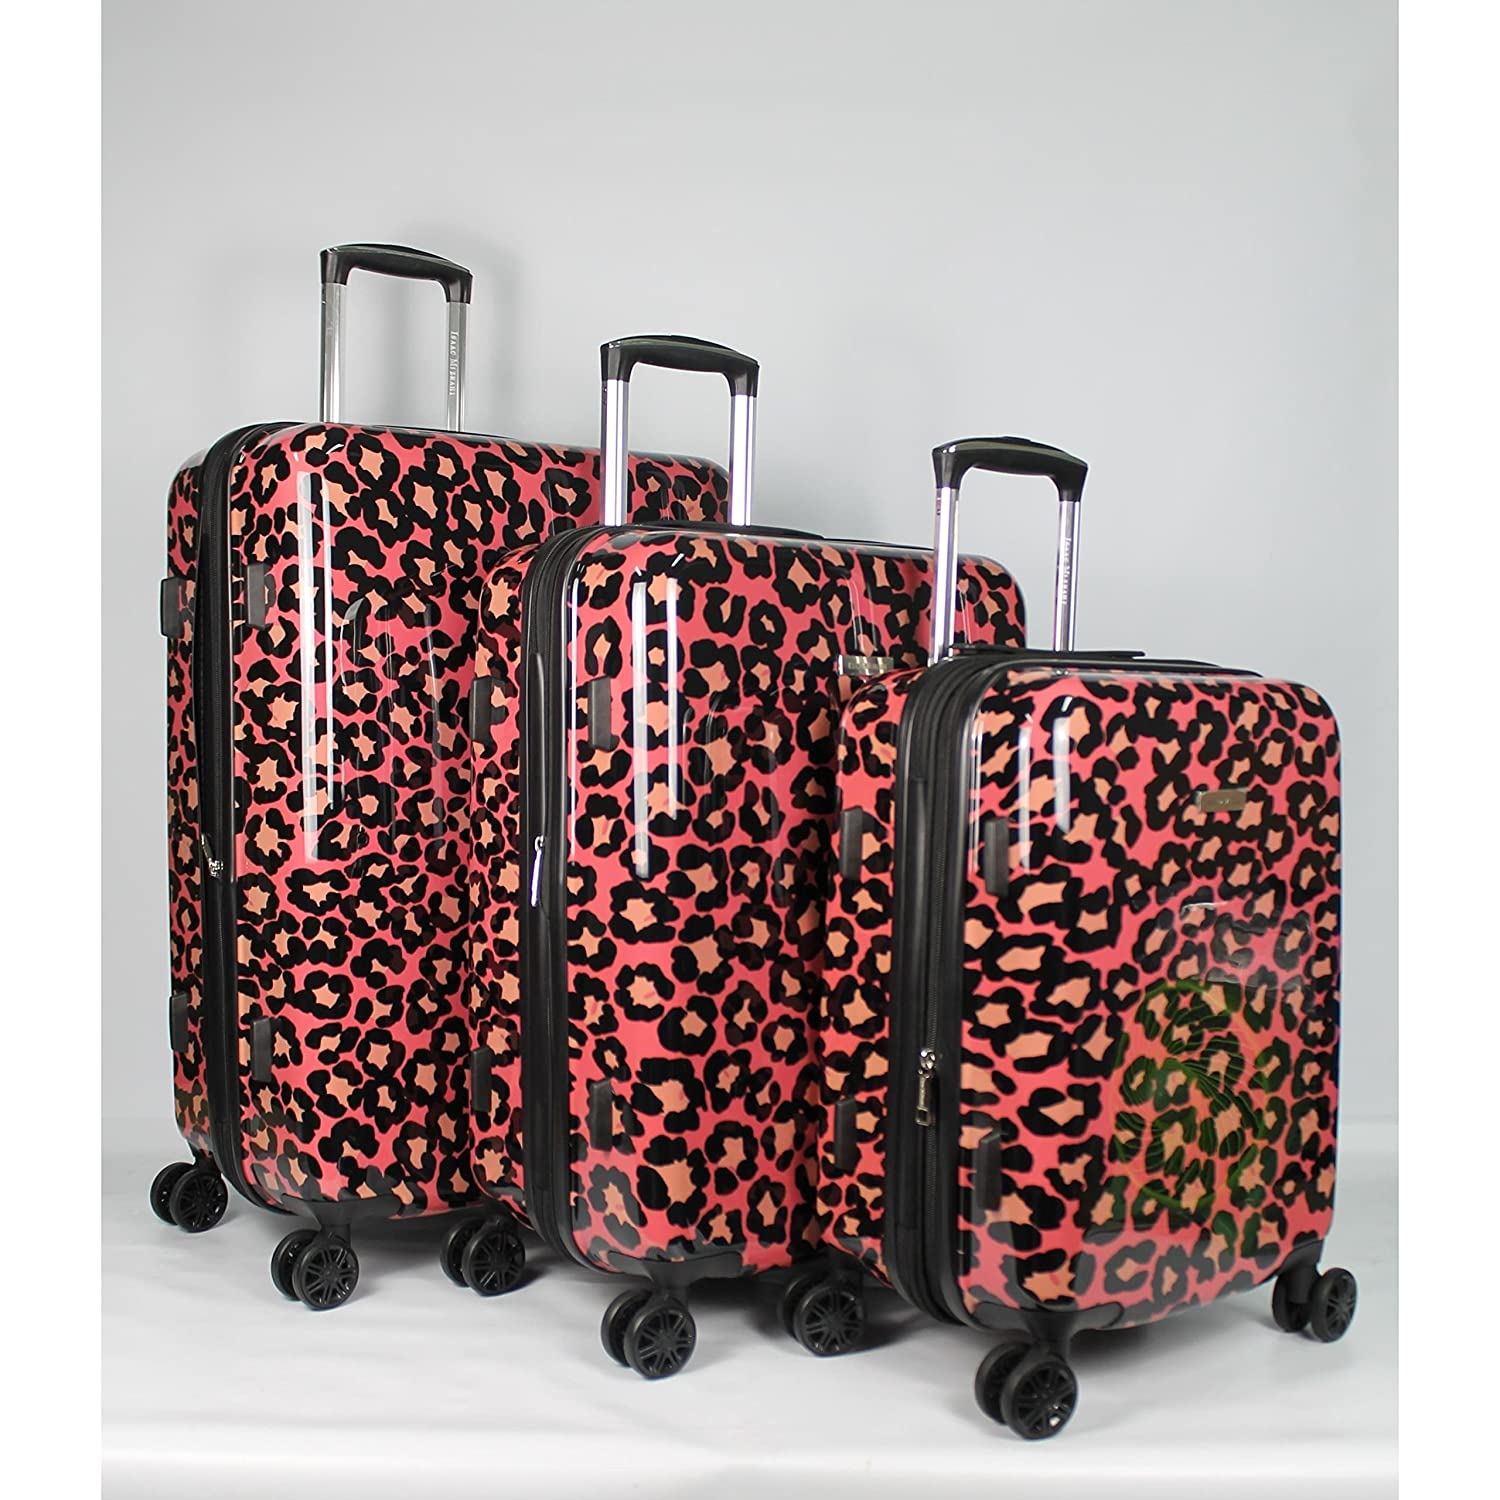 Isaac Mizrahi Gabby Hardside 3-piece luggage set Pink Grey